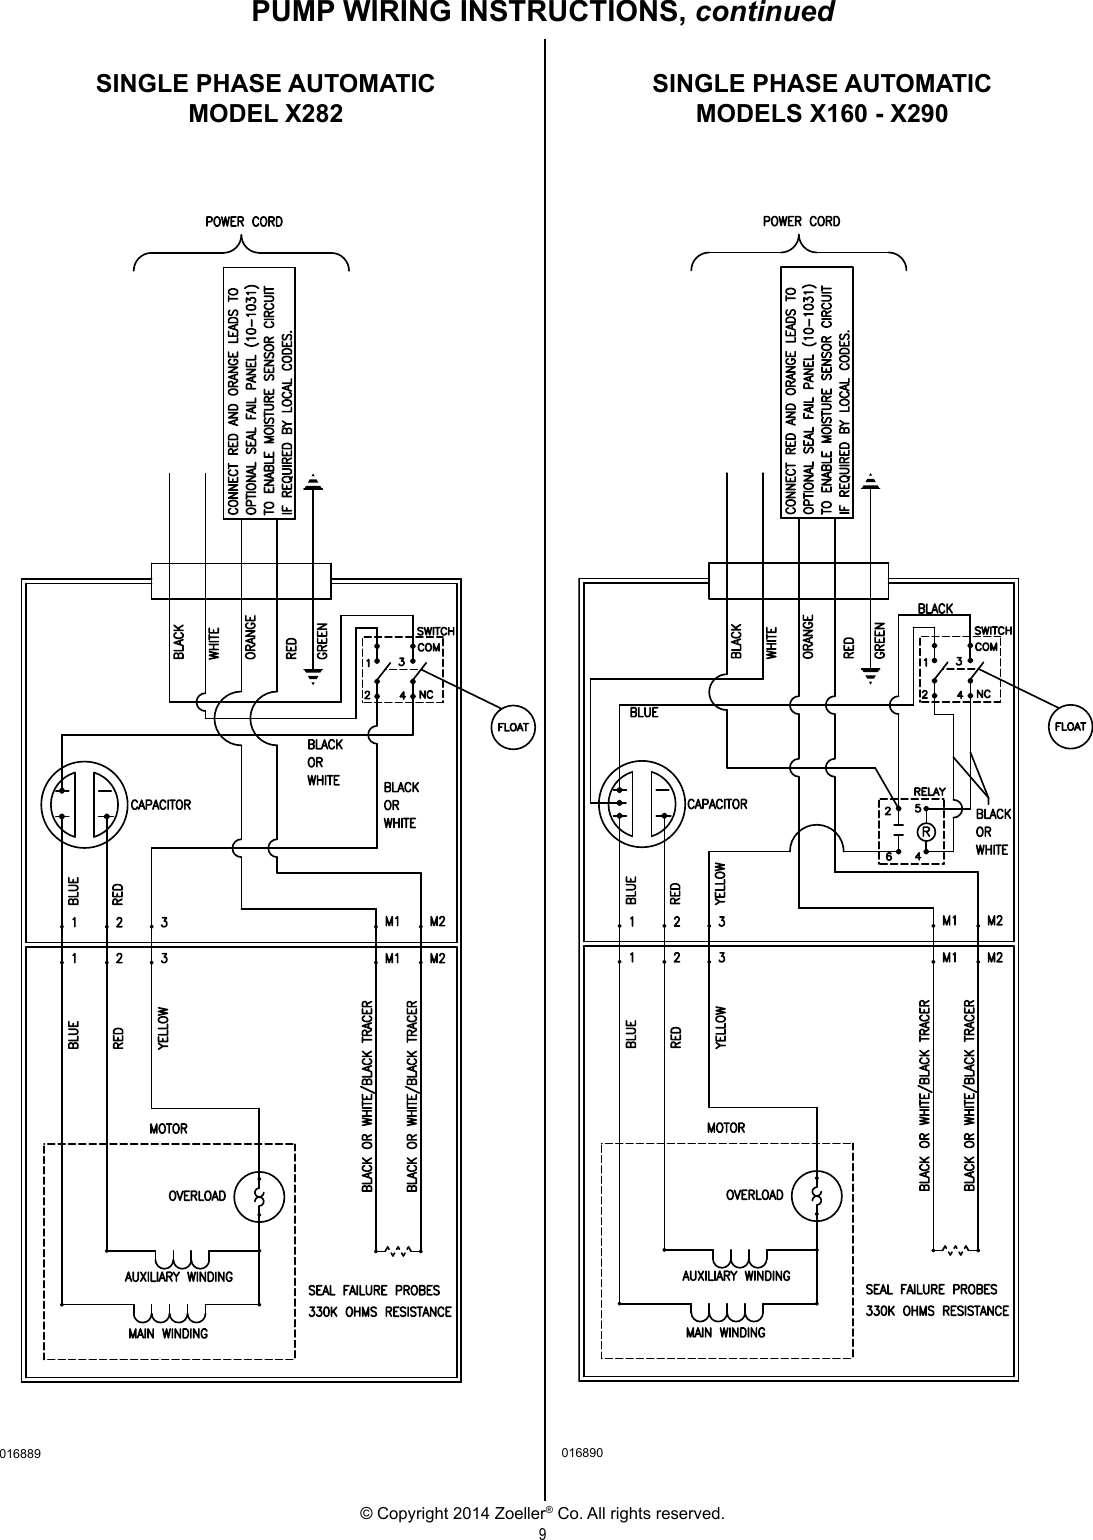 3282 1 Zoeller 160 Series Explosion Proof Pumps Owners Manual User Submersible Pump Wiring Diagram Page 9 Of 12